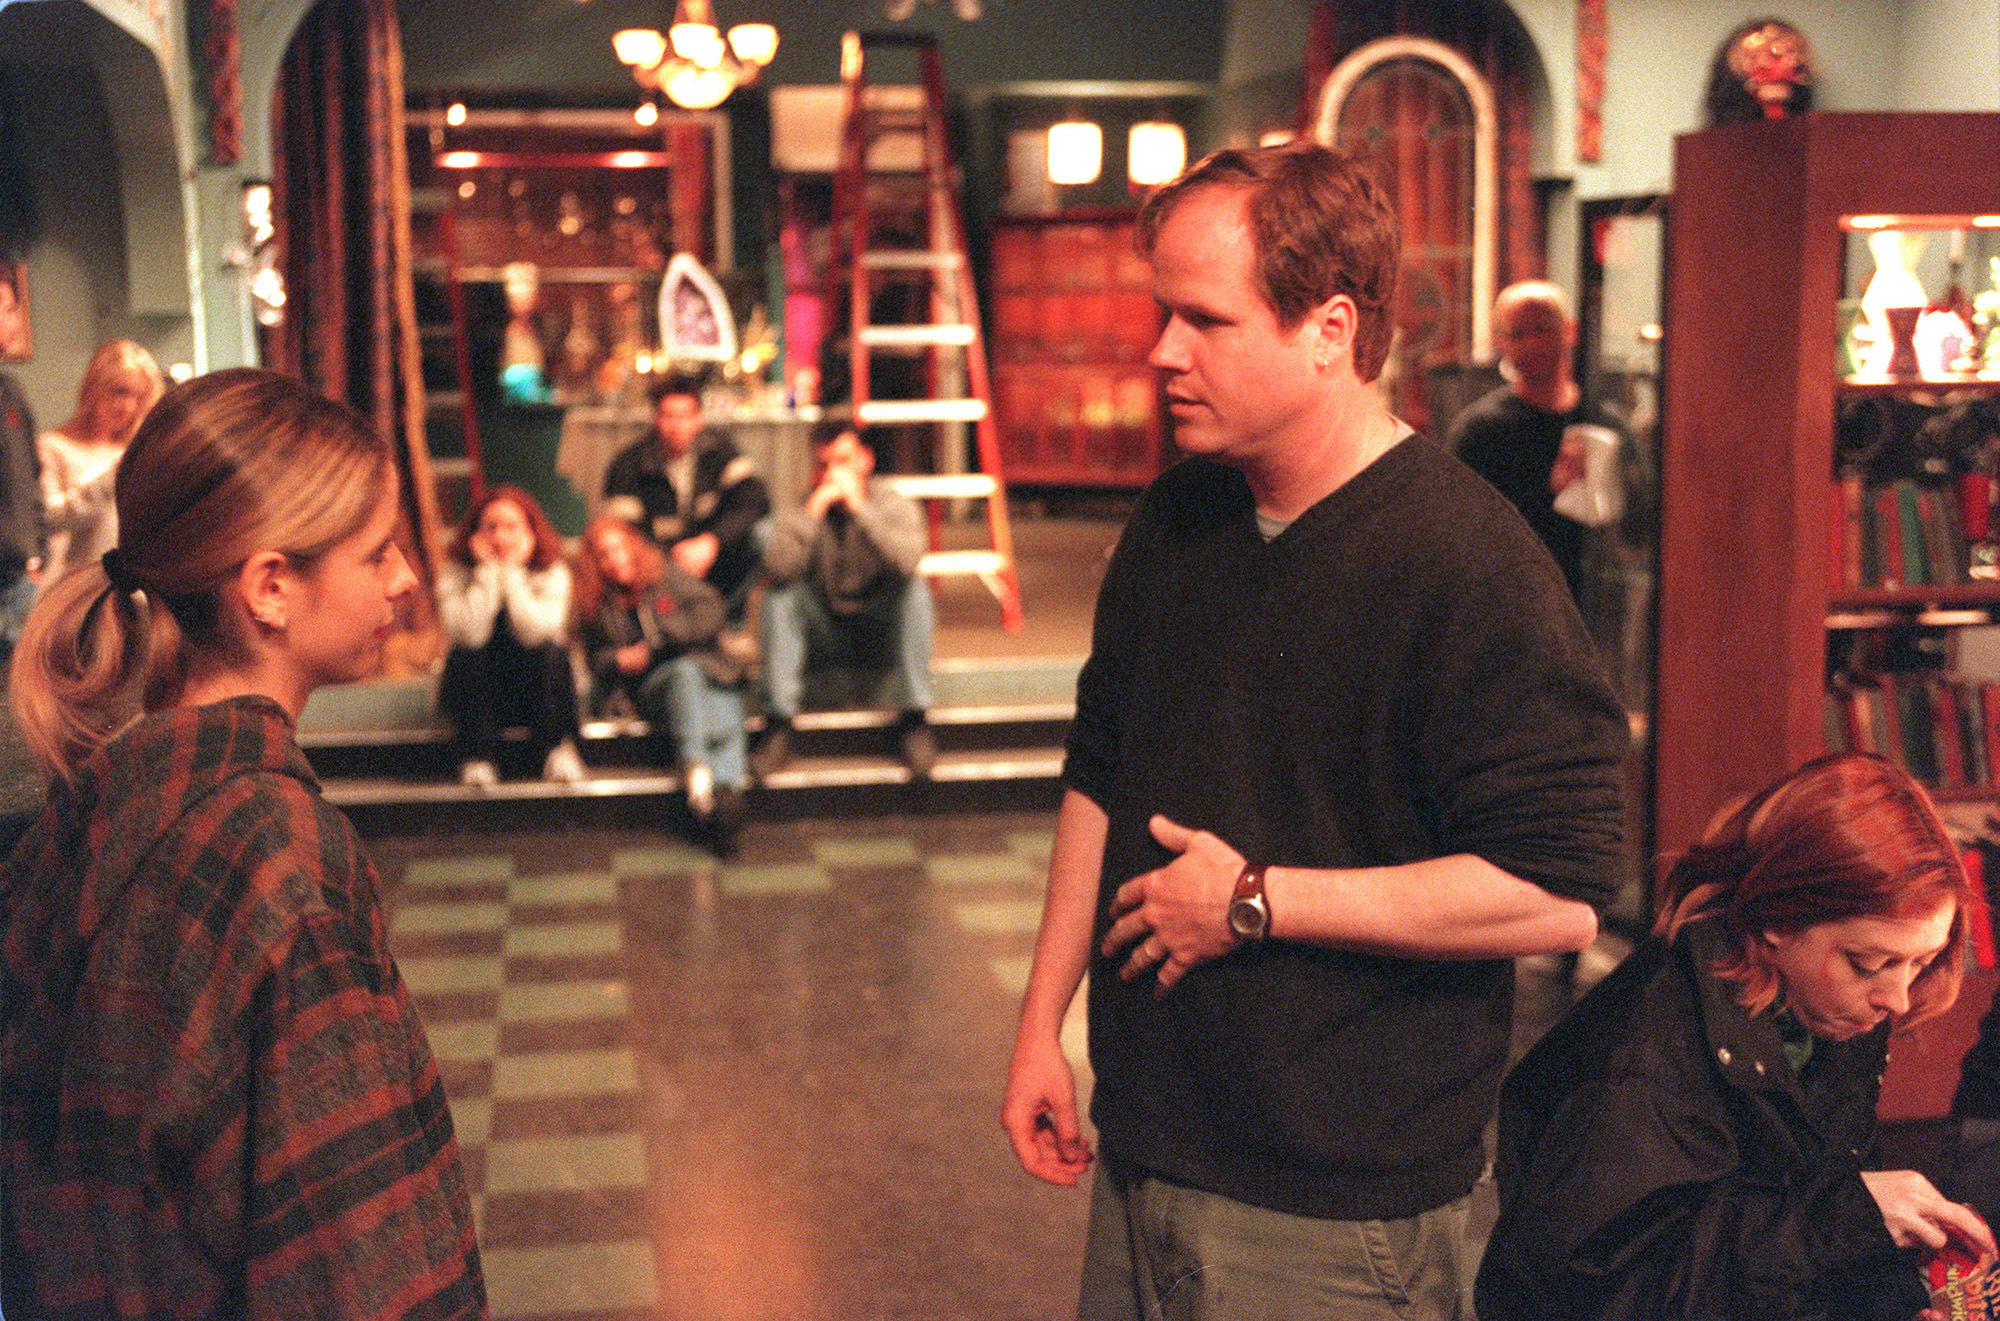 Joss Whedon and Sarah Michelle Gellar on the set of 'Buffy the Vampire Slayer' on May 20, 2001.